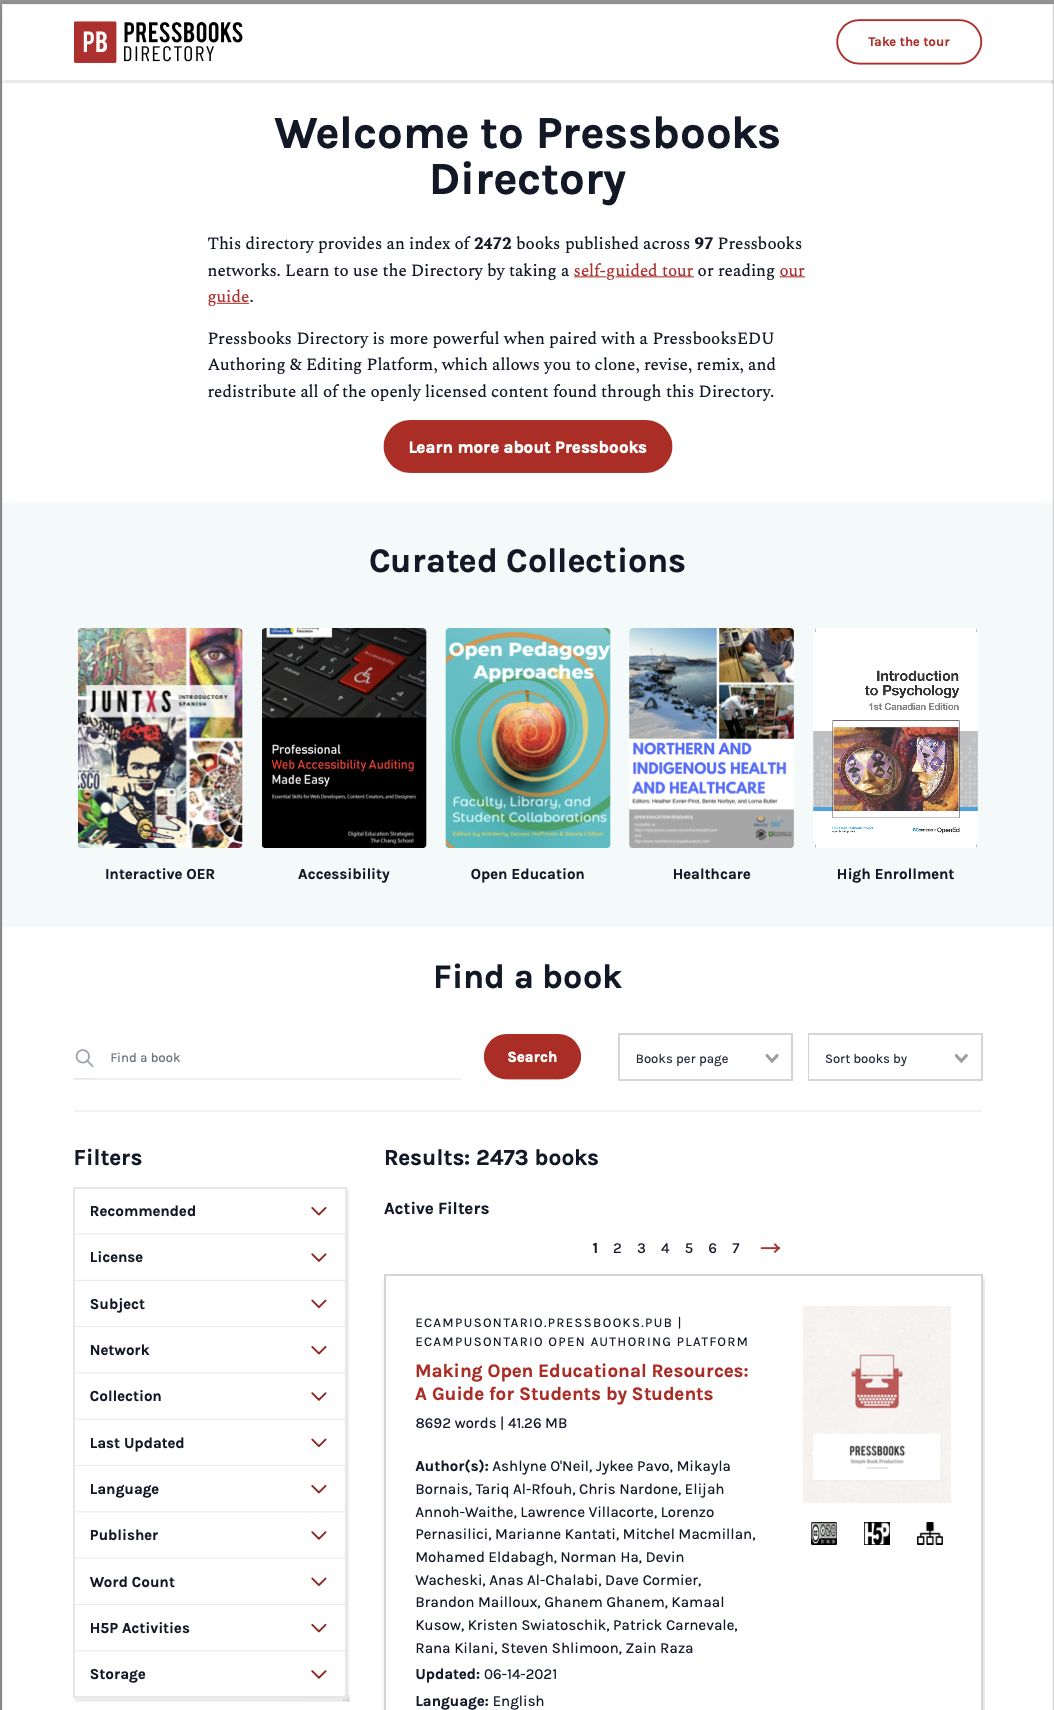 The landing page of the Pressbooks Directory